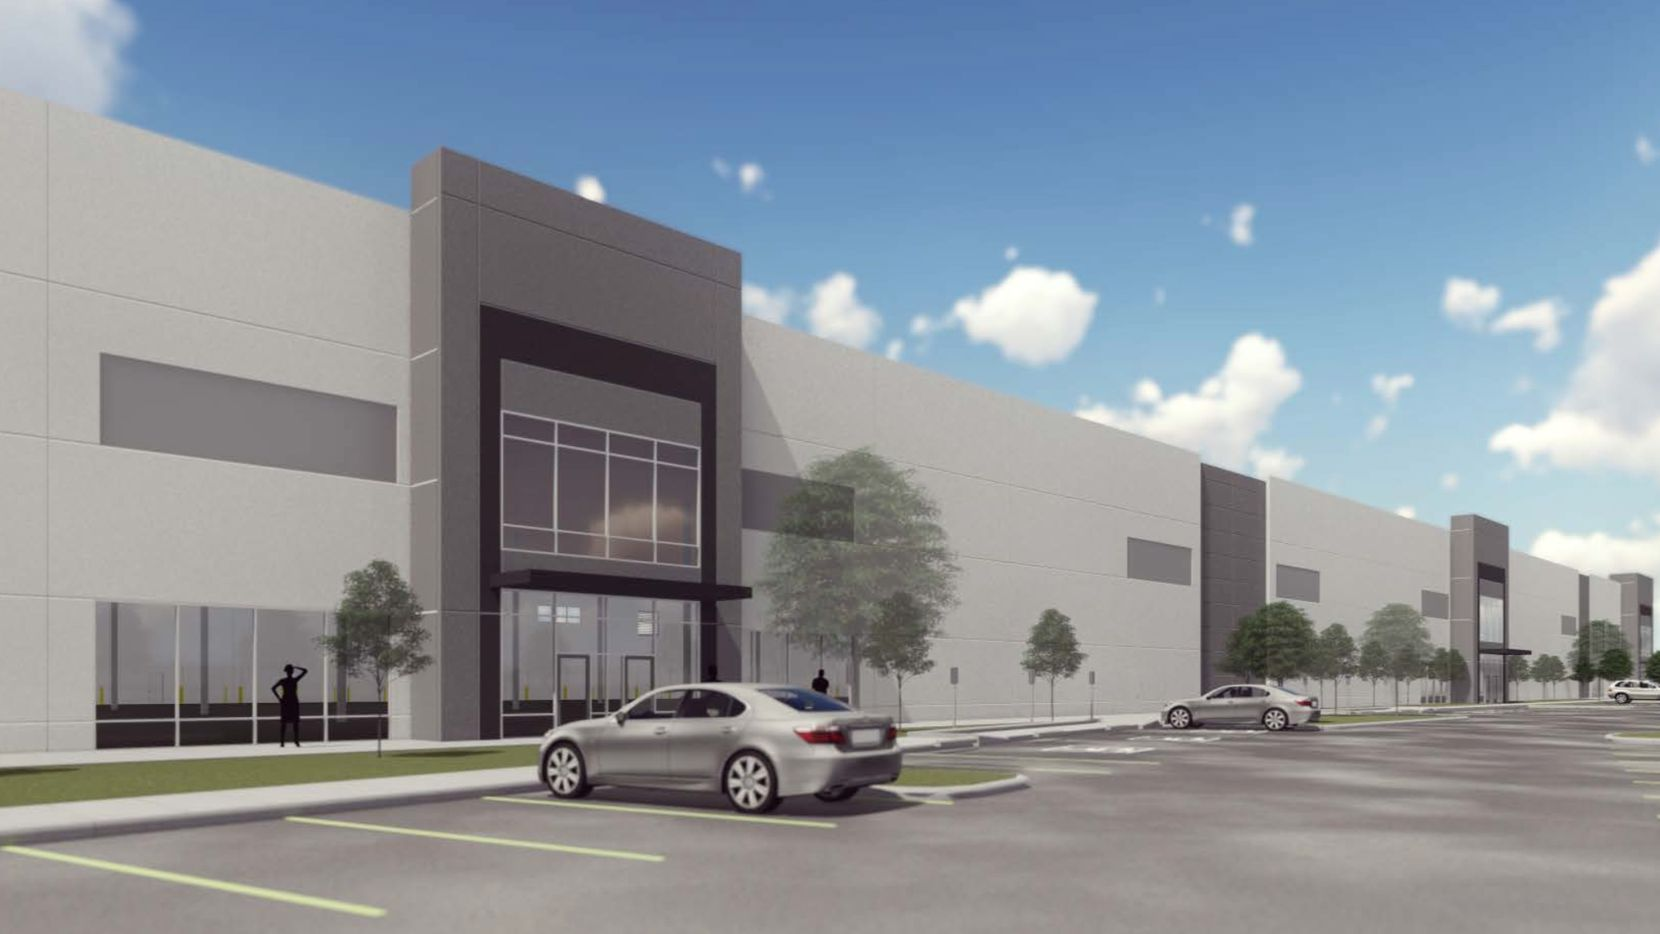 GEA Group is taking space in the Star Business Park in Frisco.